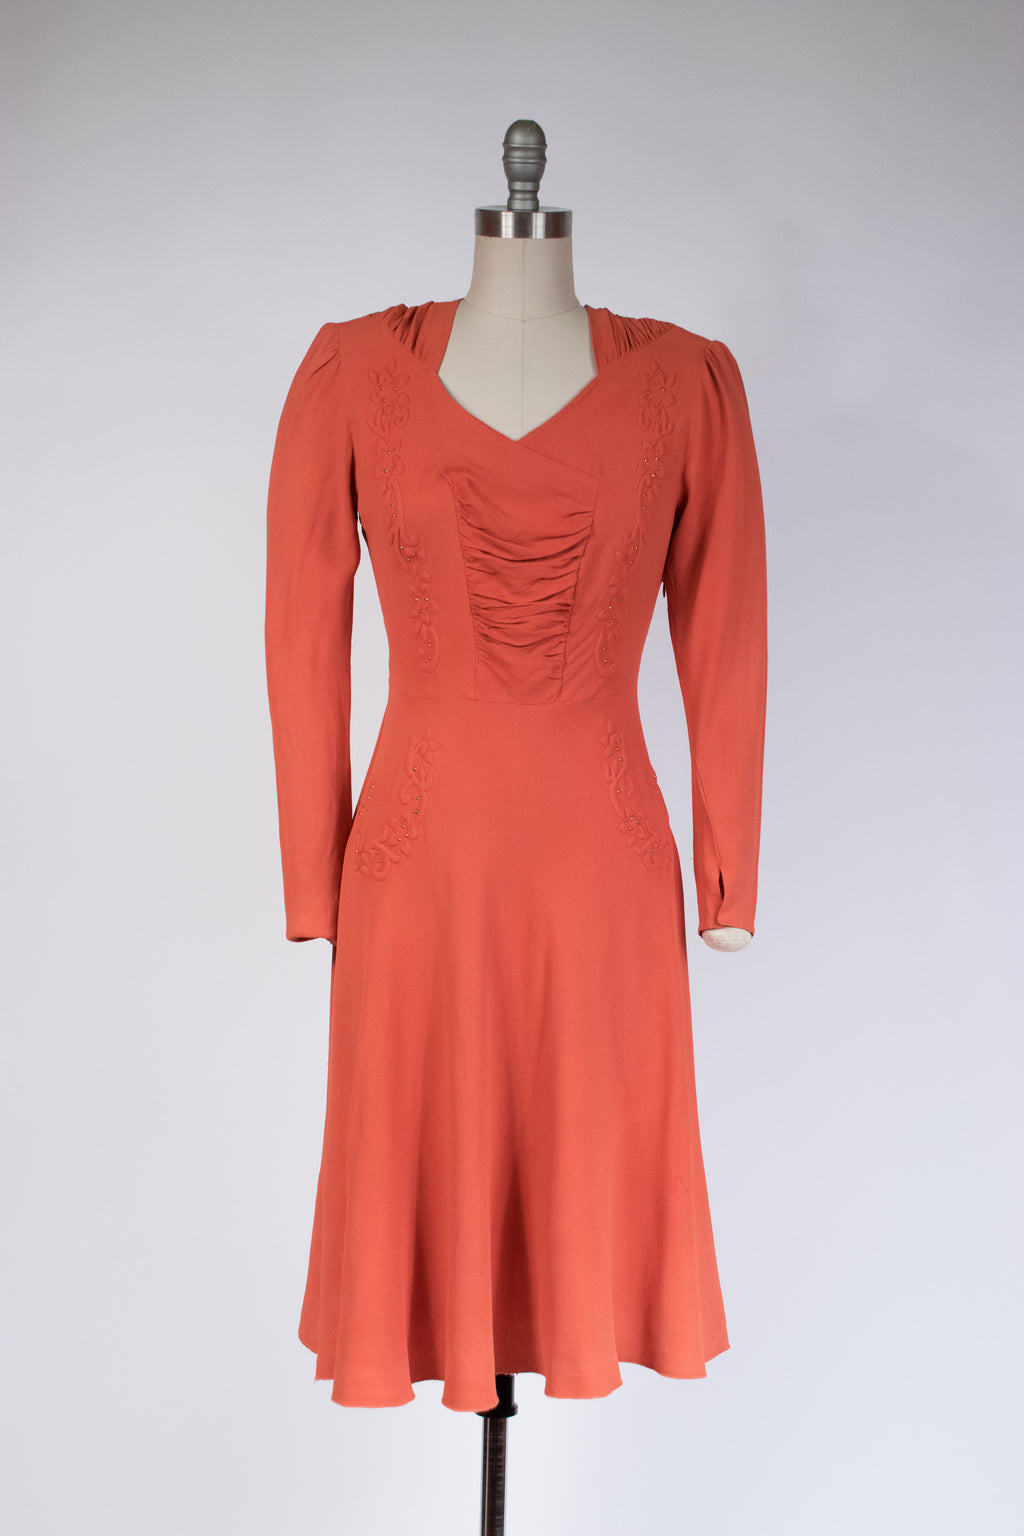 Striking Late 1930s Coral Dress with Trapunto Work and Brass Studs